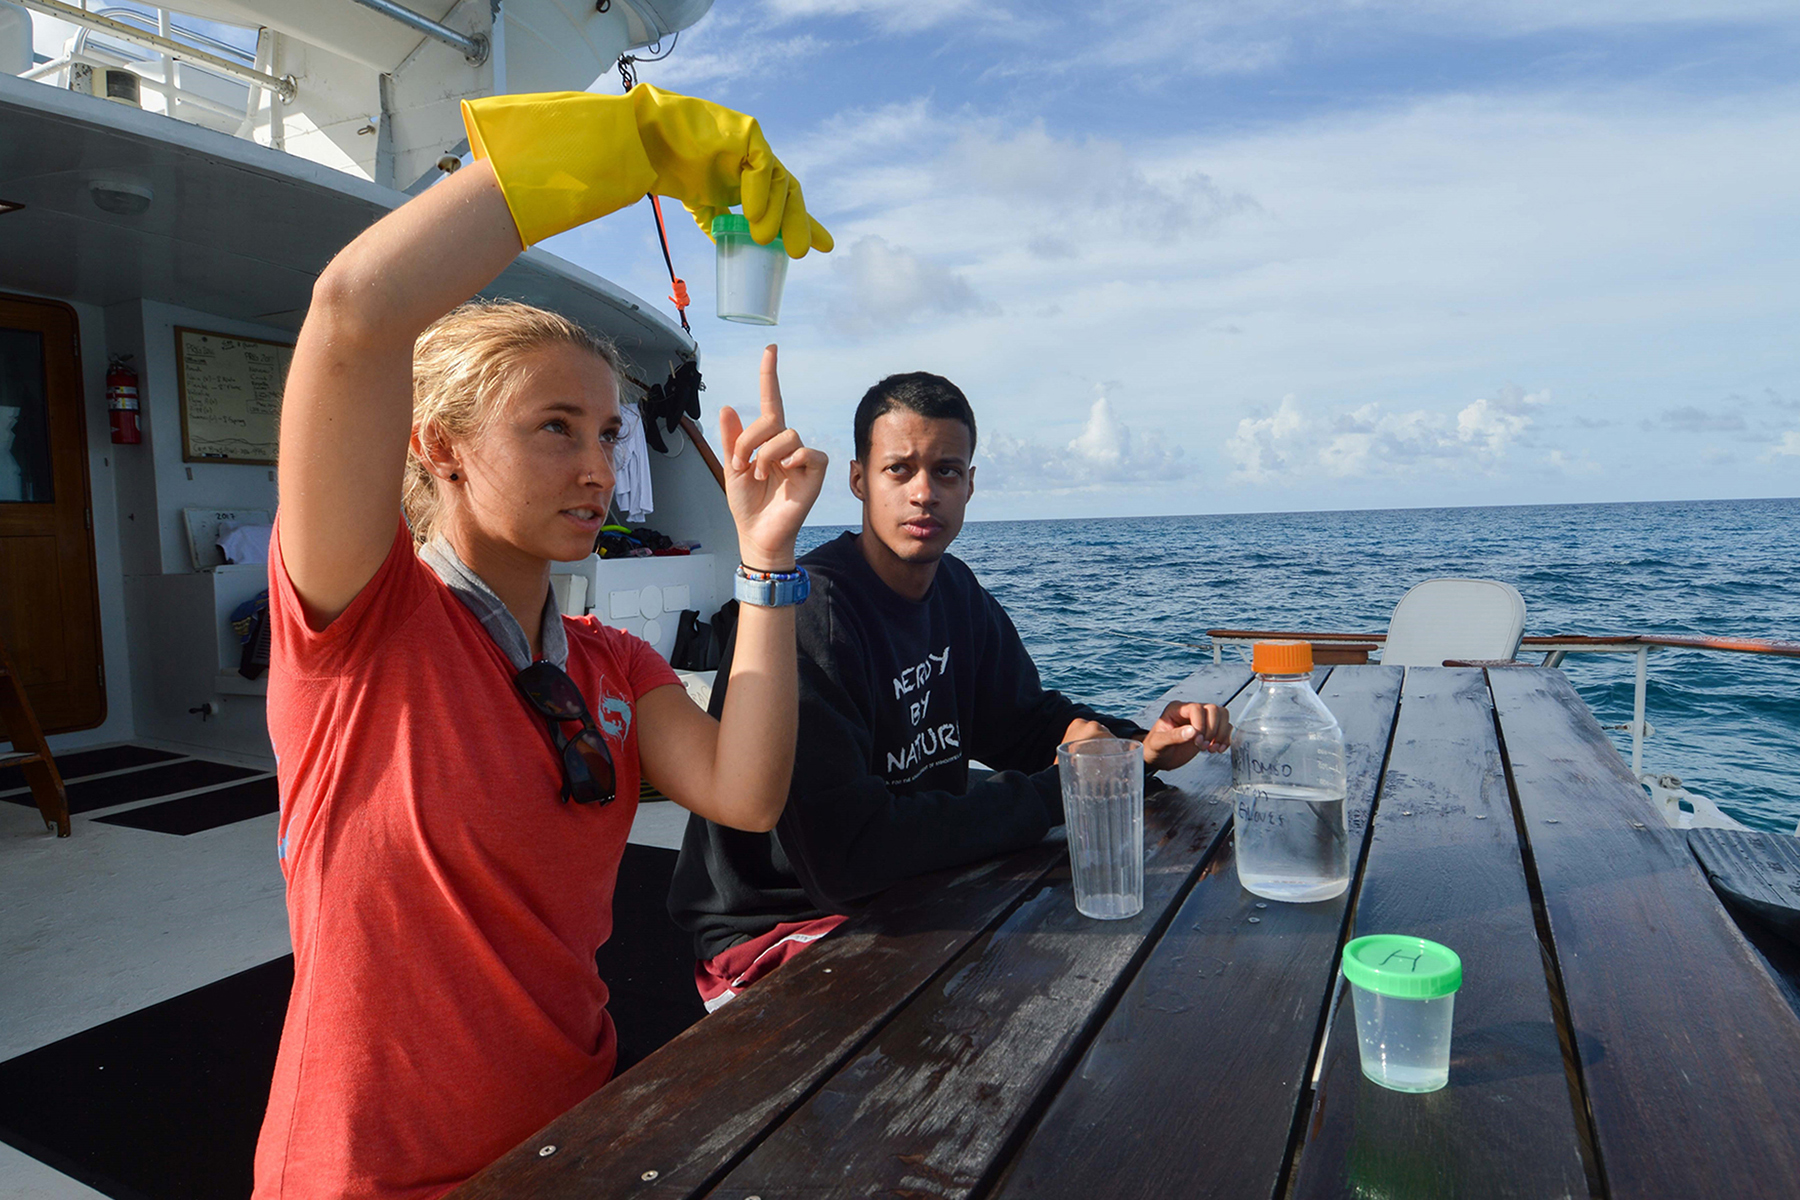 a young girl points to the specimen container she's holding while sitting on the deck of a ship